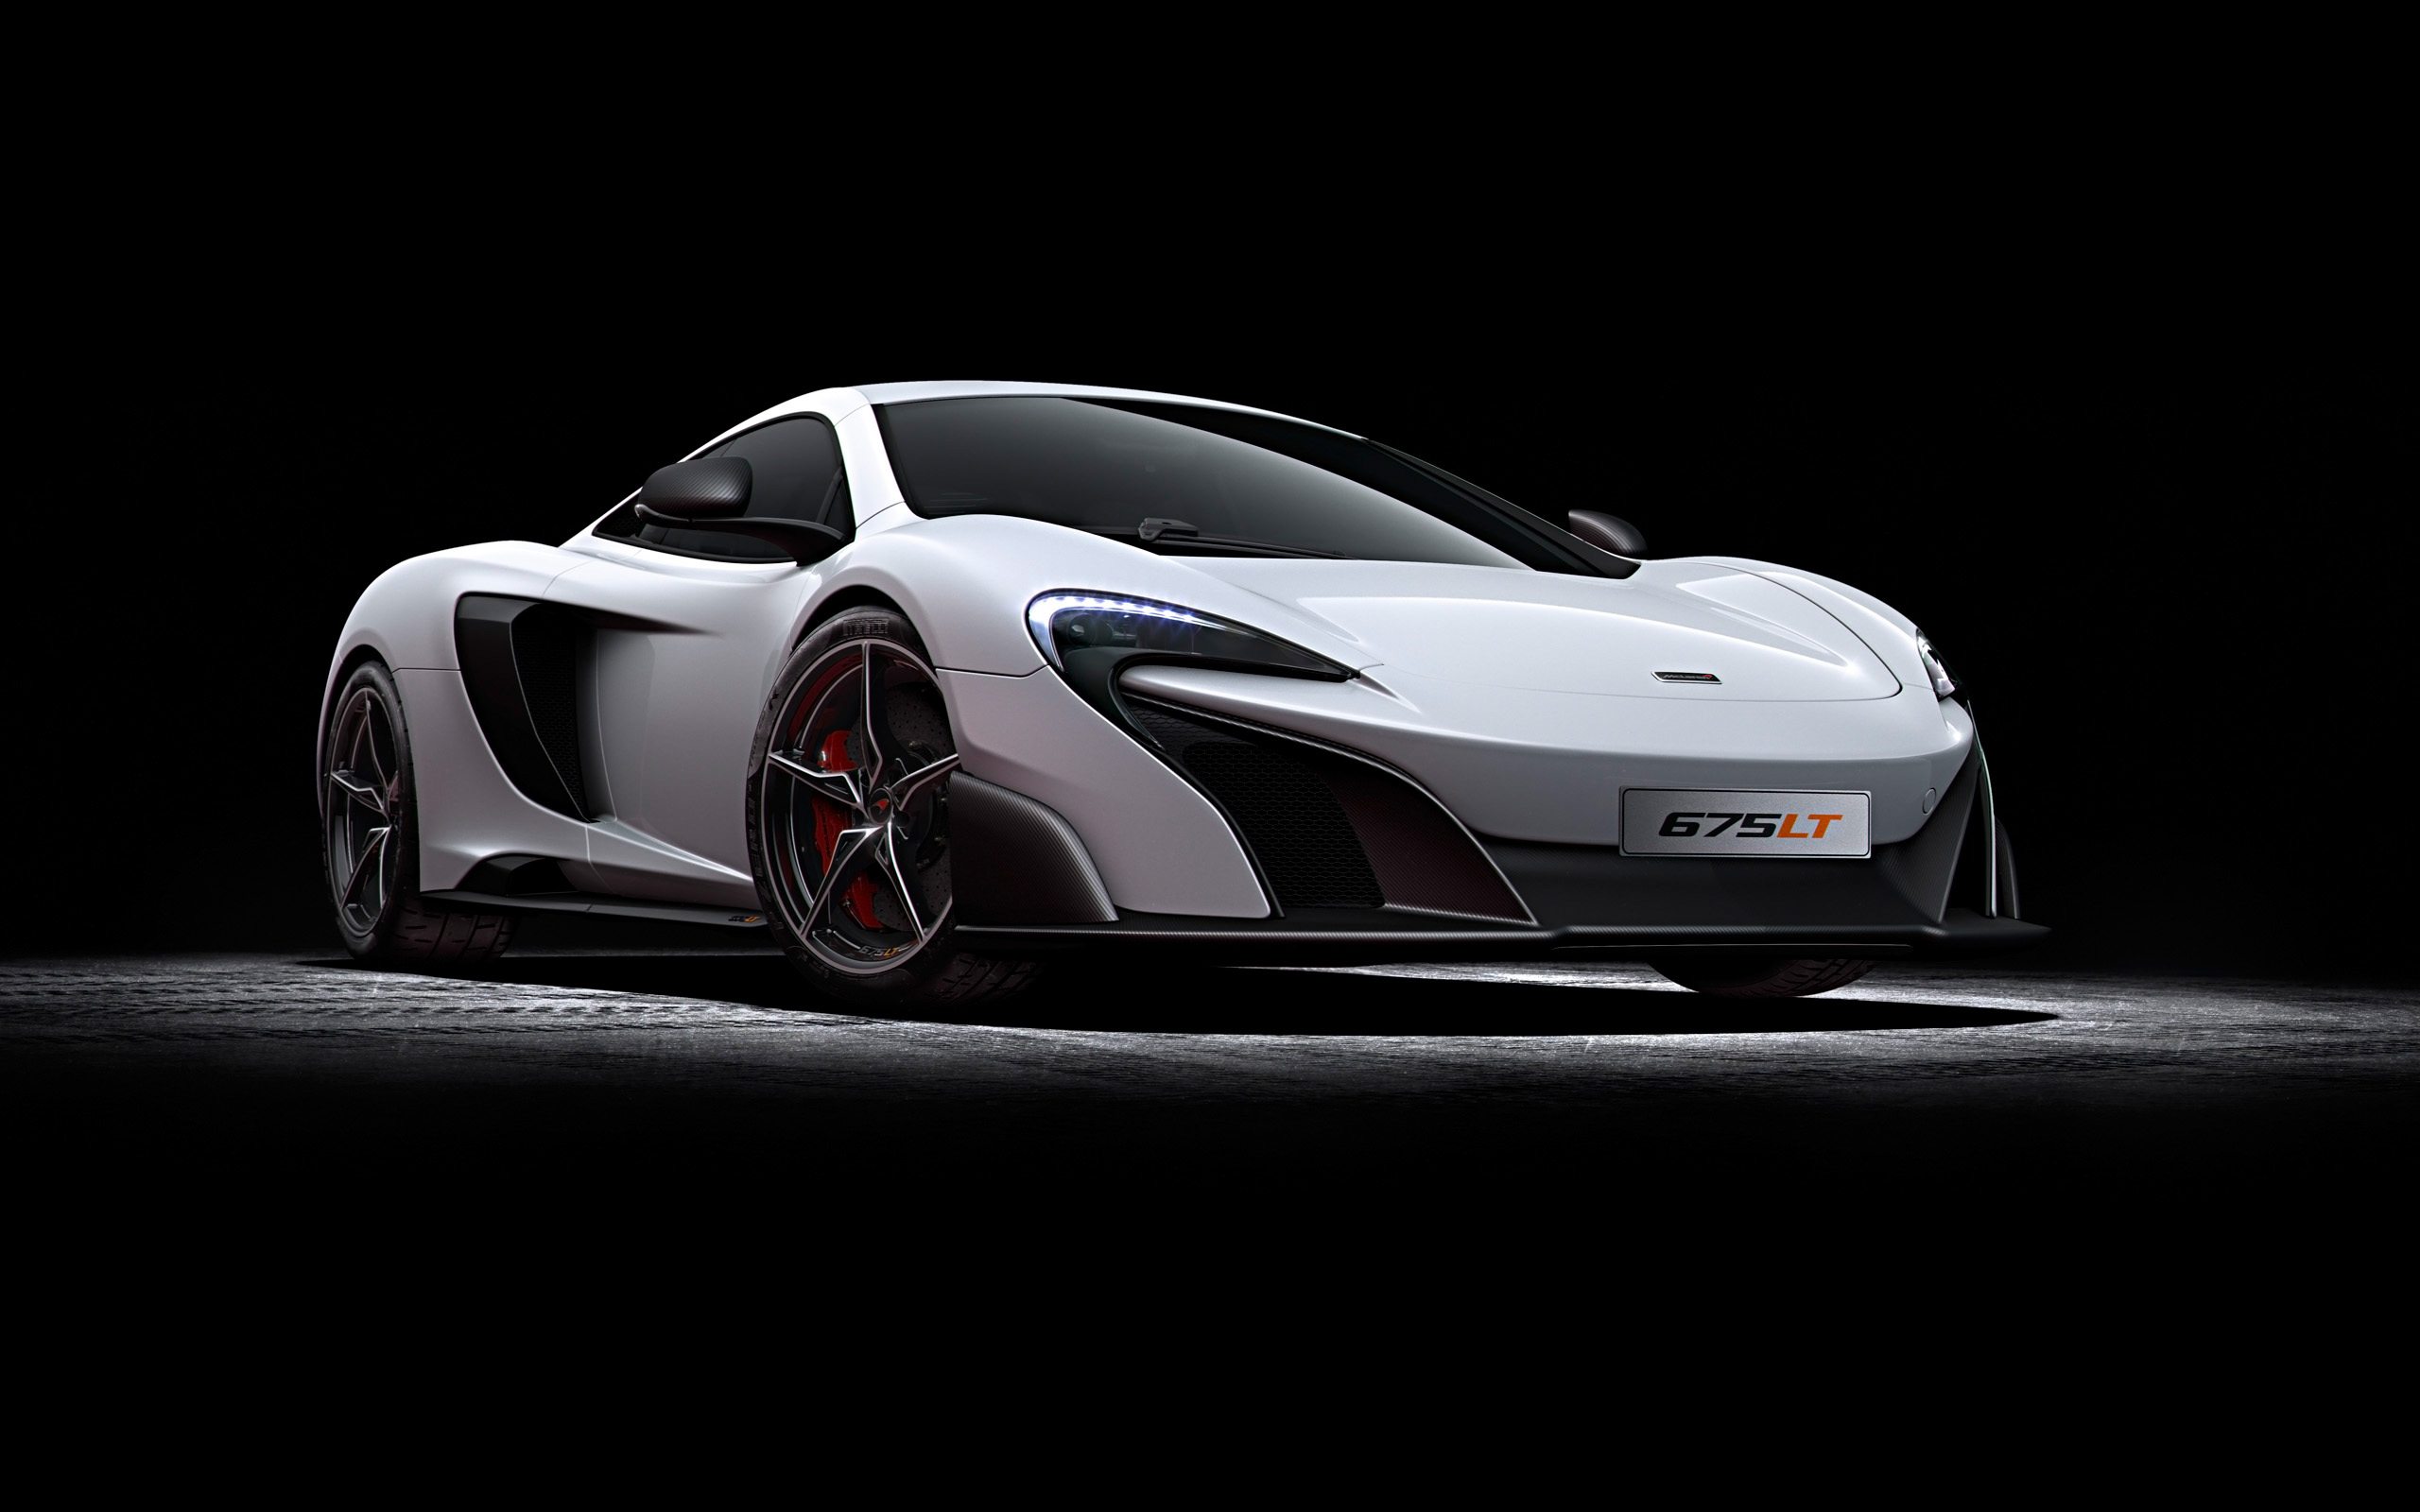 2015 mclaren 675lt wallpaper hd 47445